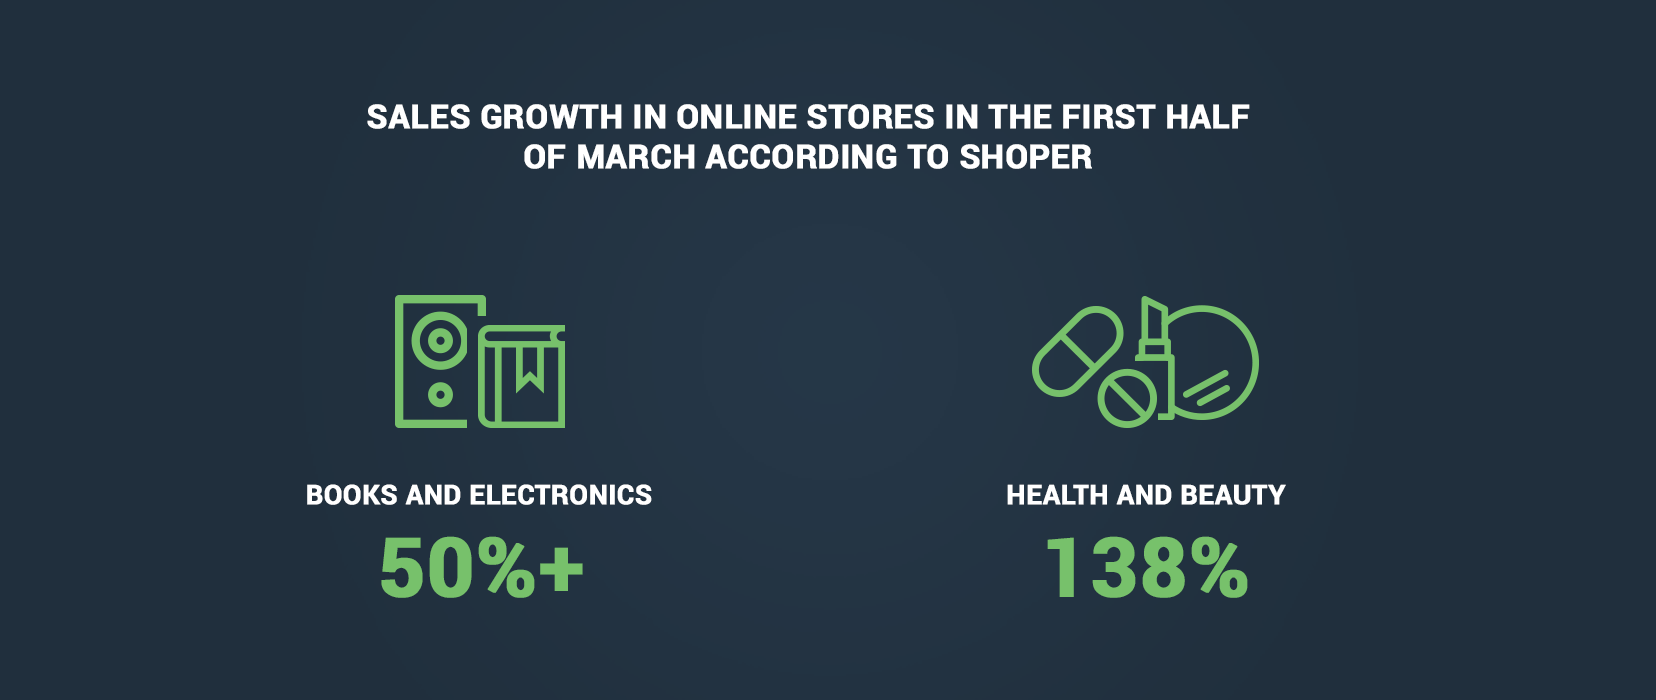 Coronavirus impact on Sales in Online Stores